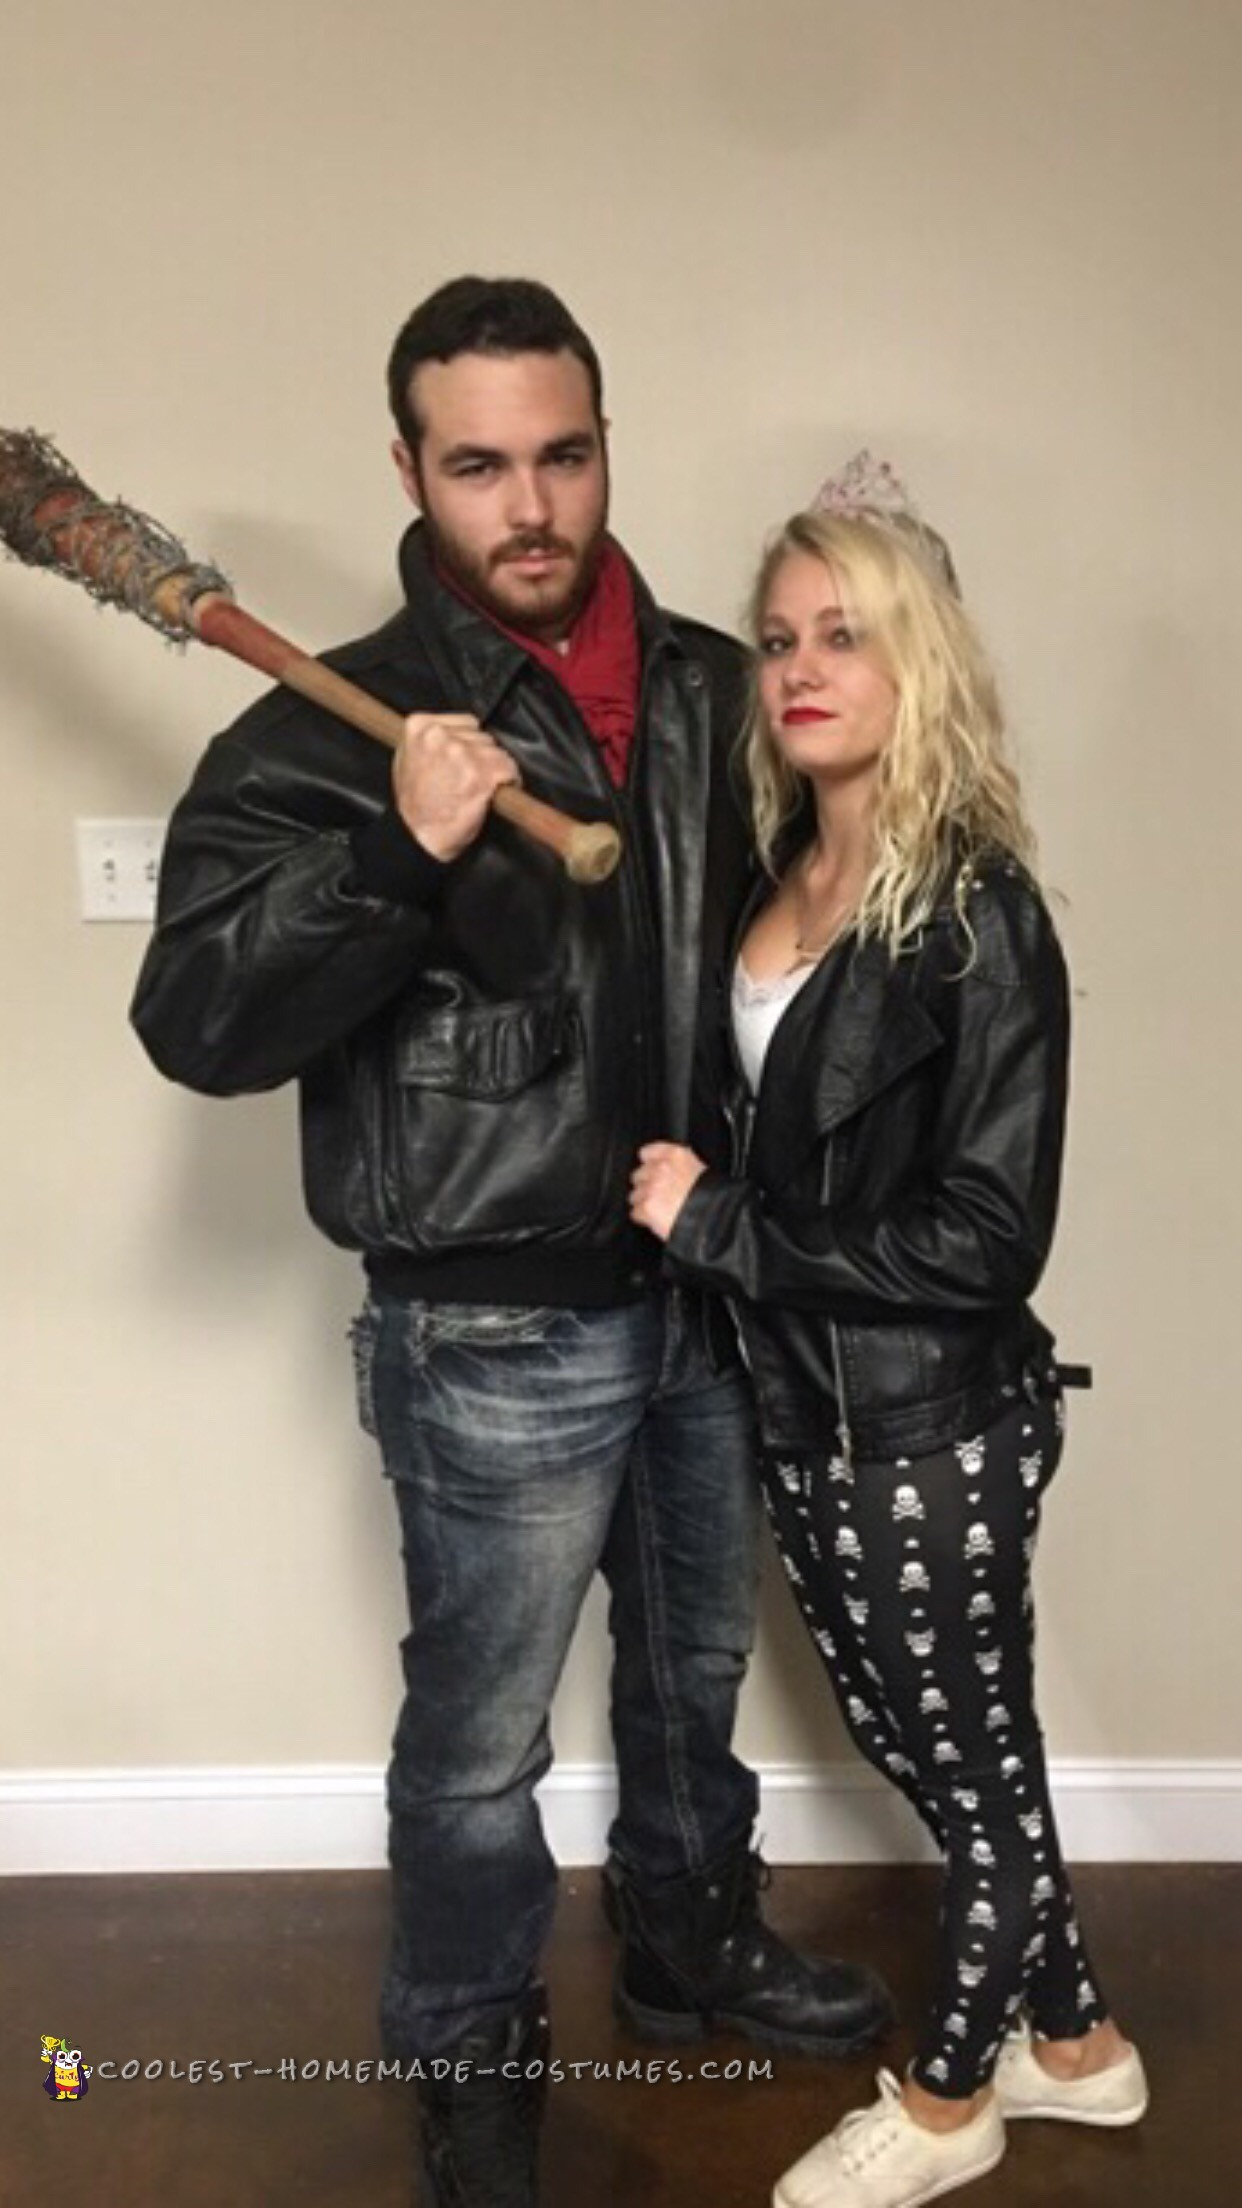 The hot Negan and his wife